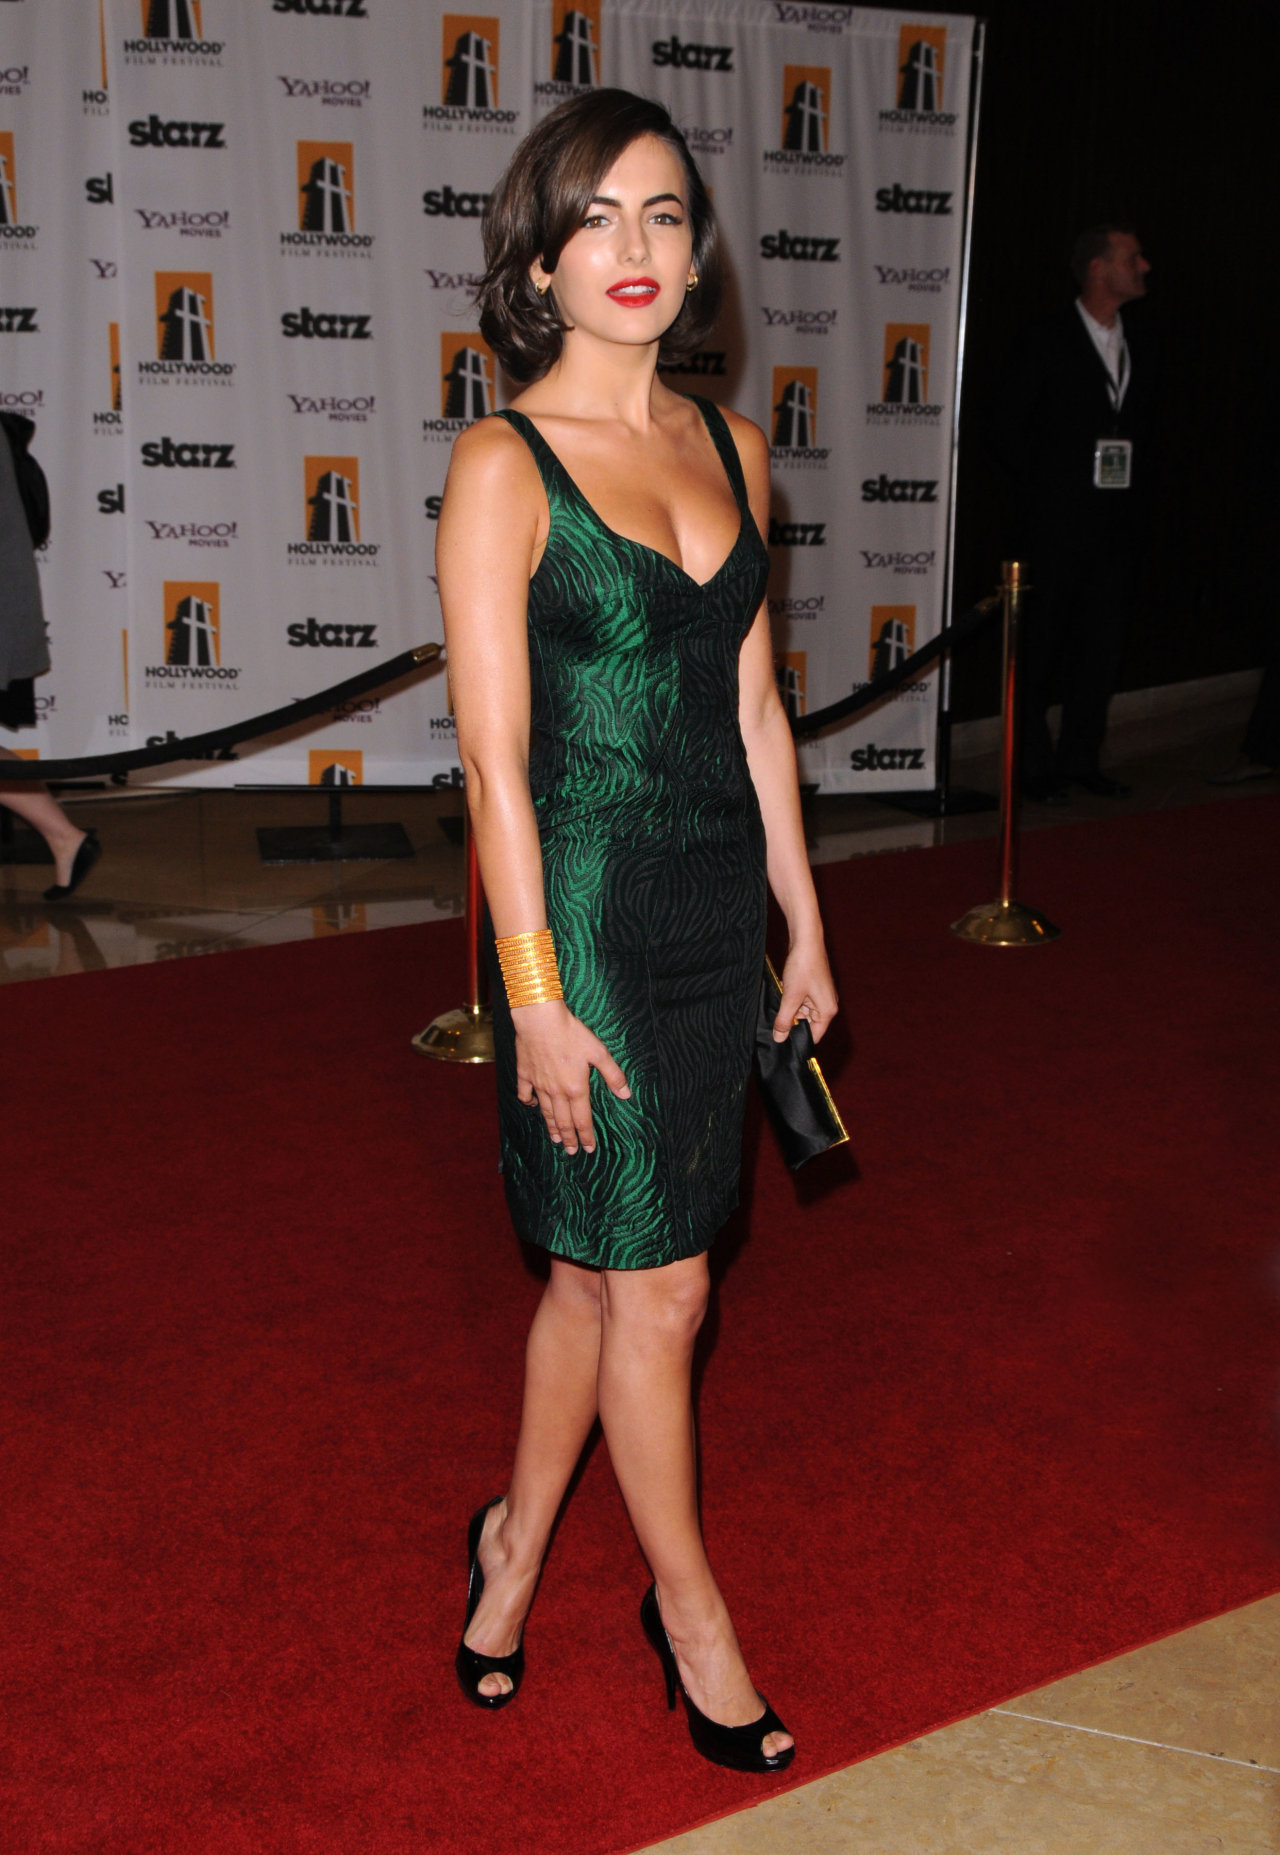 Camilla Belle leaked wallpapers